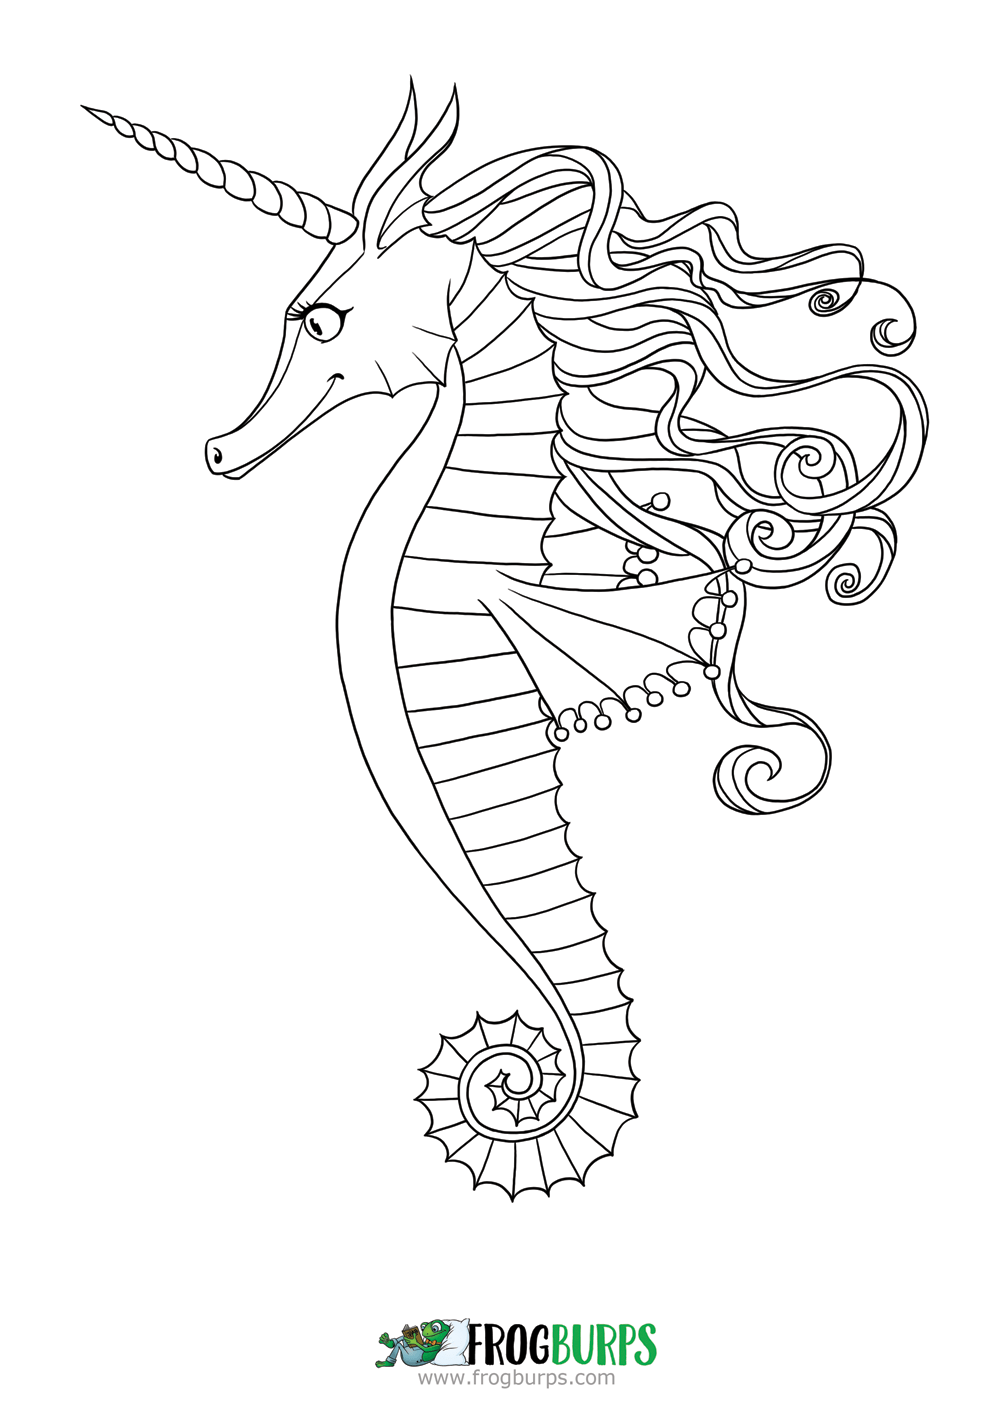 seahorses coloring pages fun freebies frogburps pages seahorses coloring